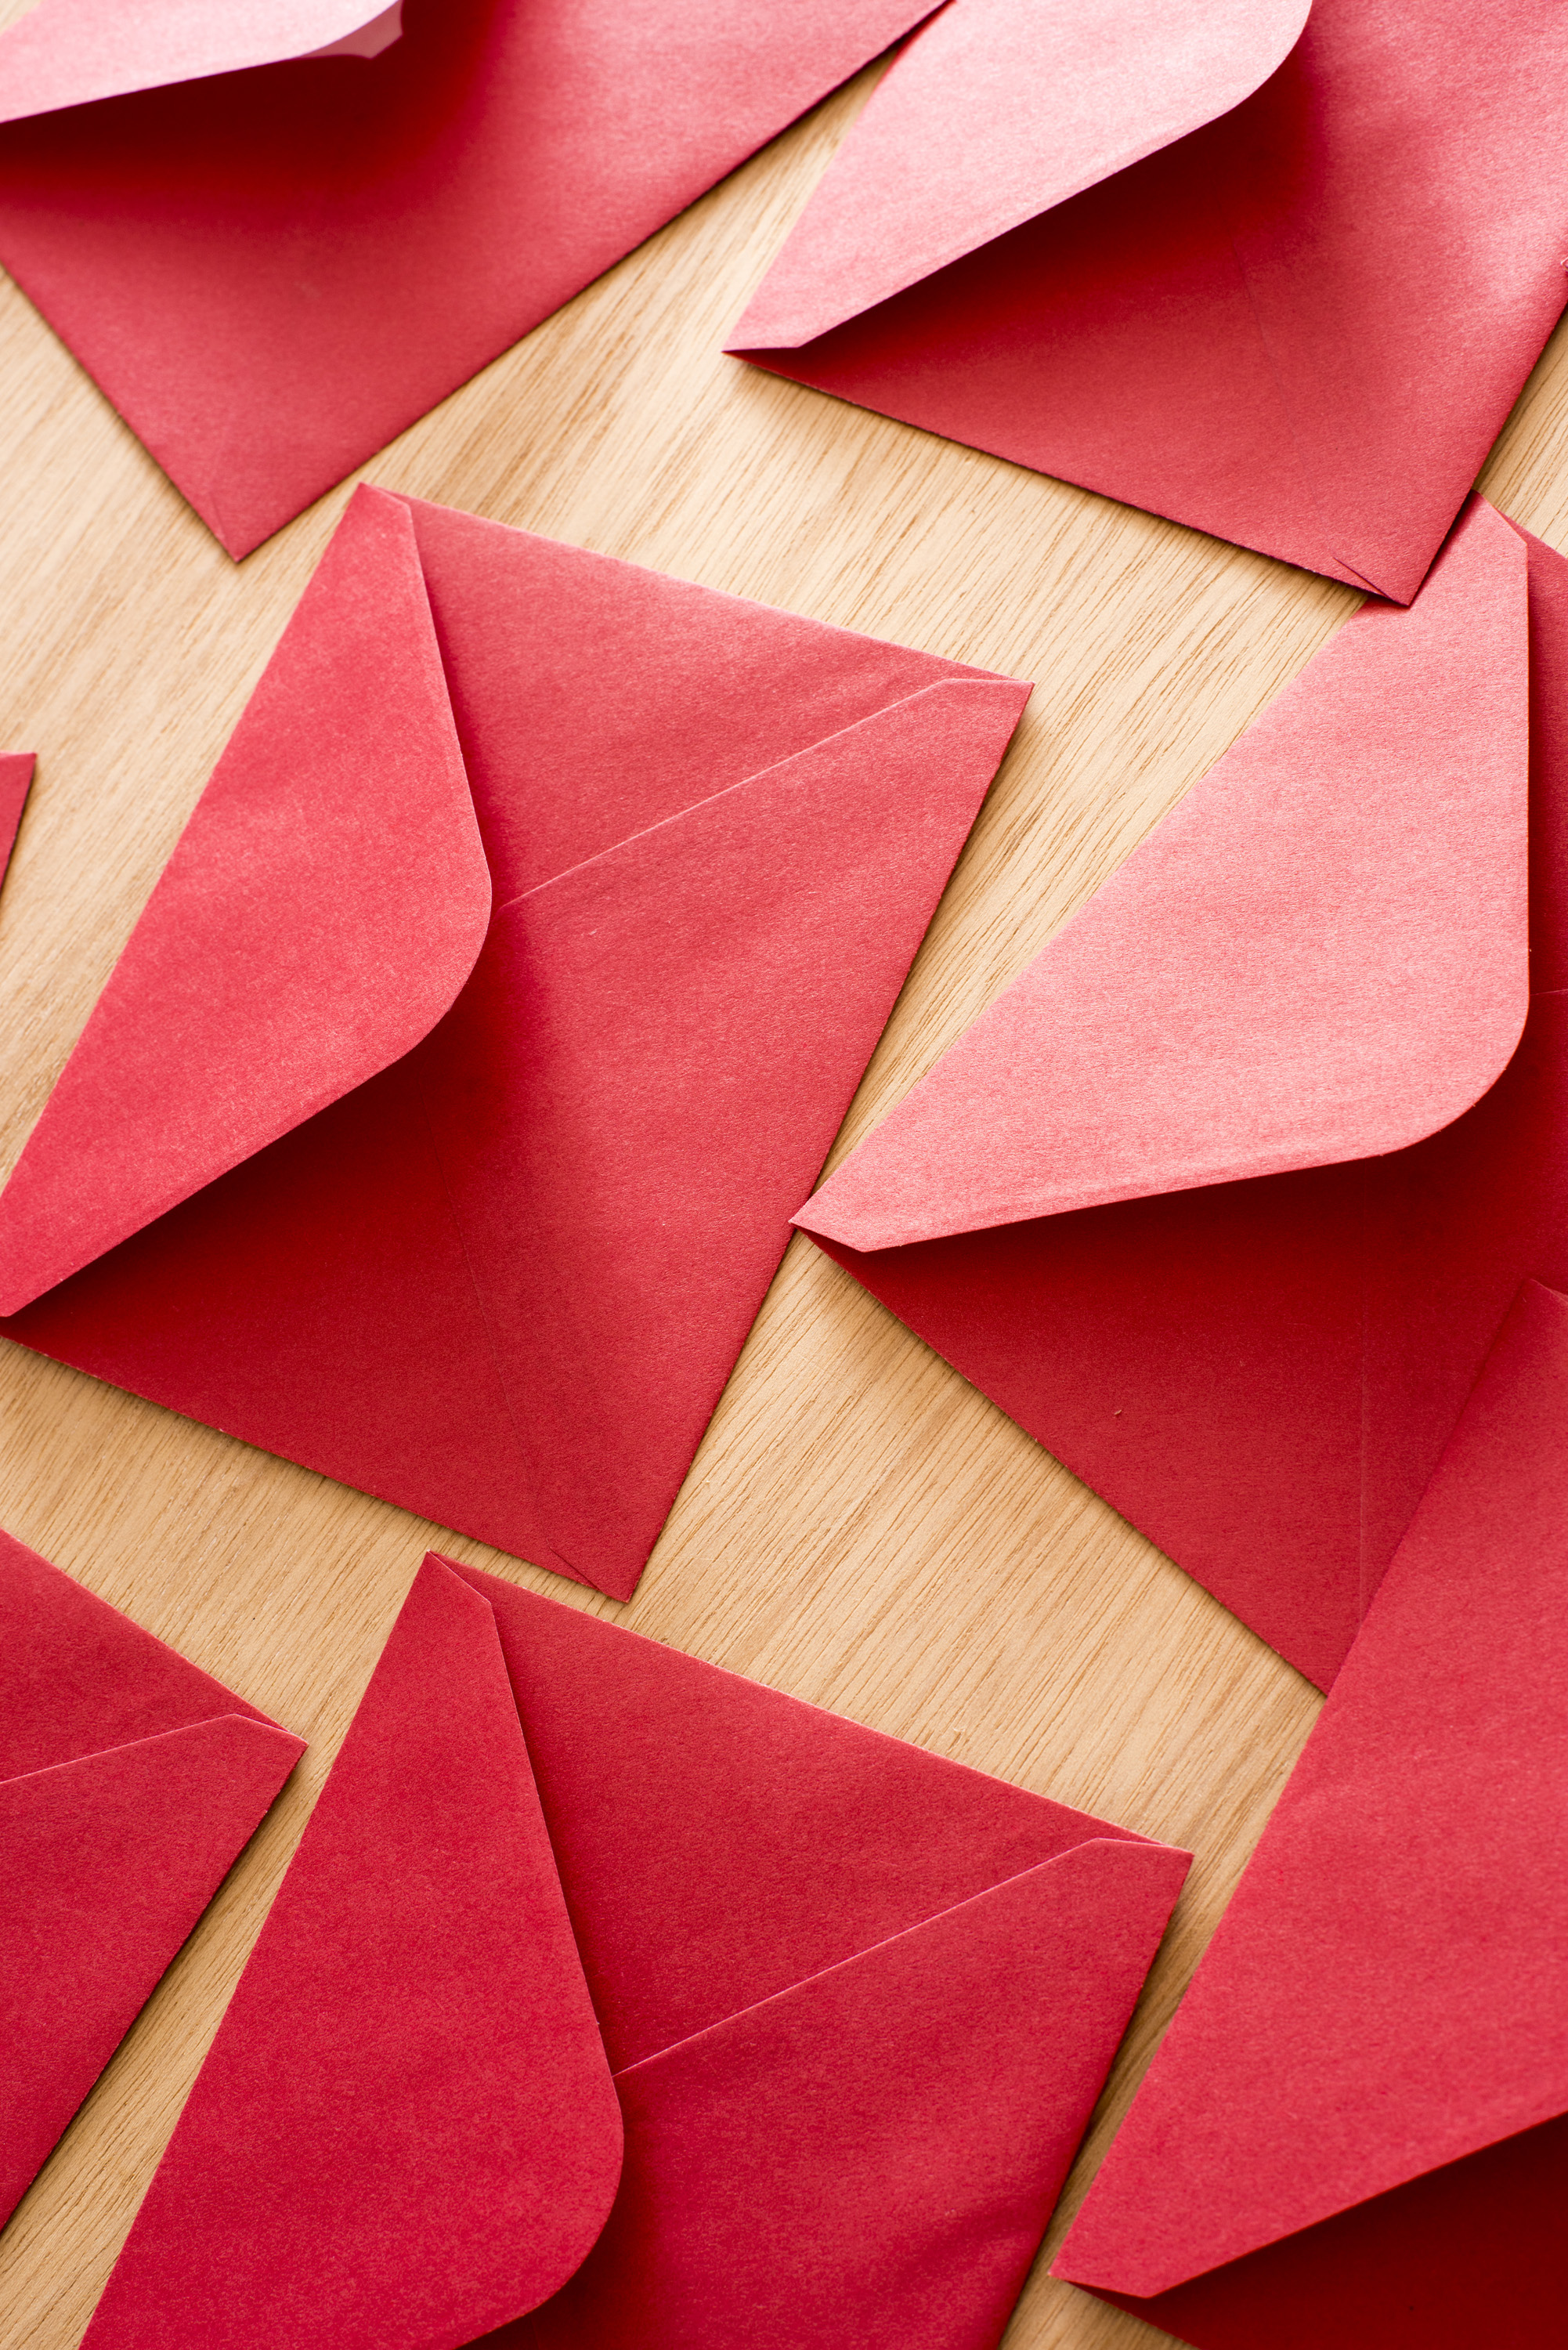 photo of festive red christmas or valentines envelopes